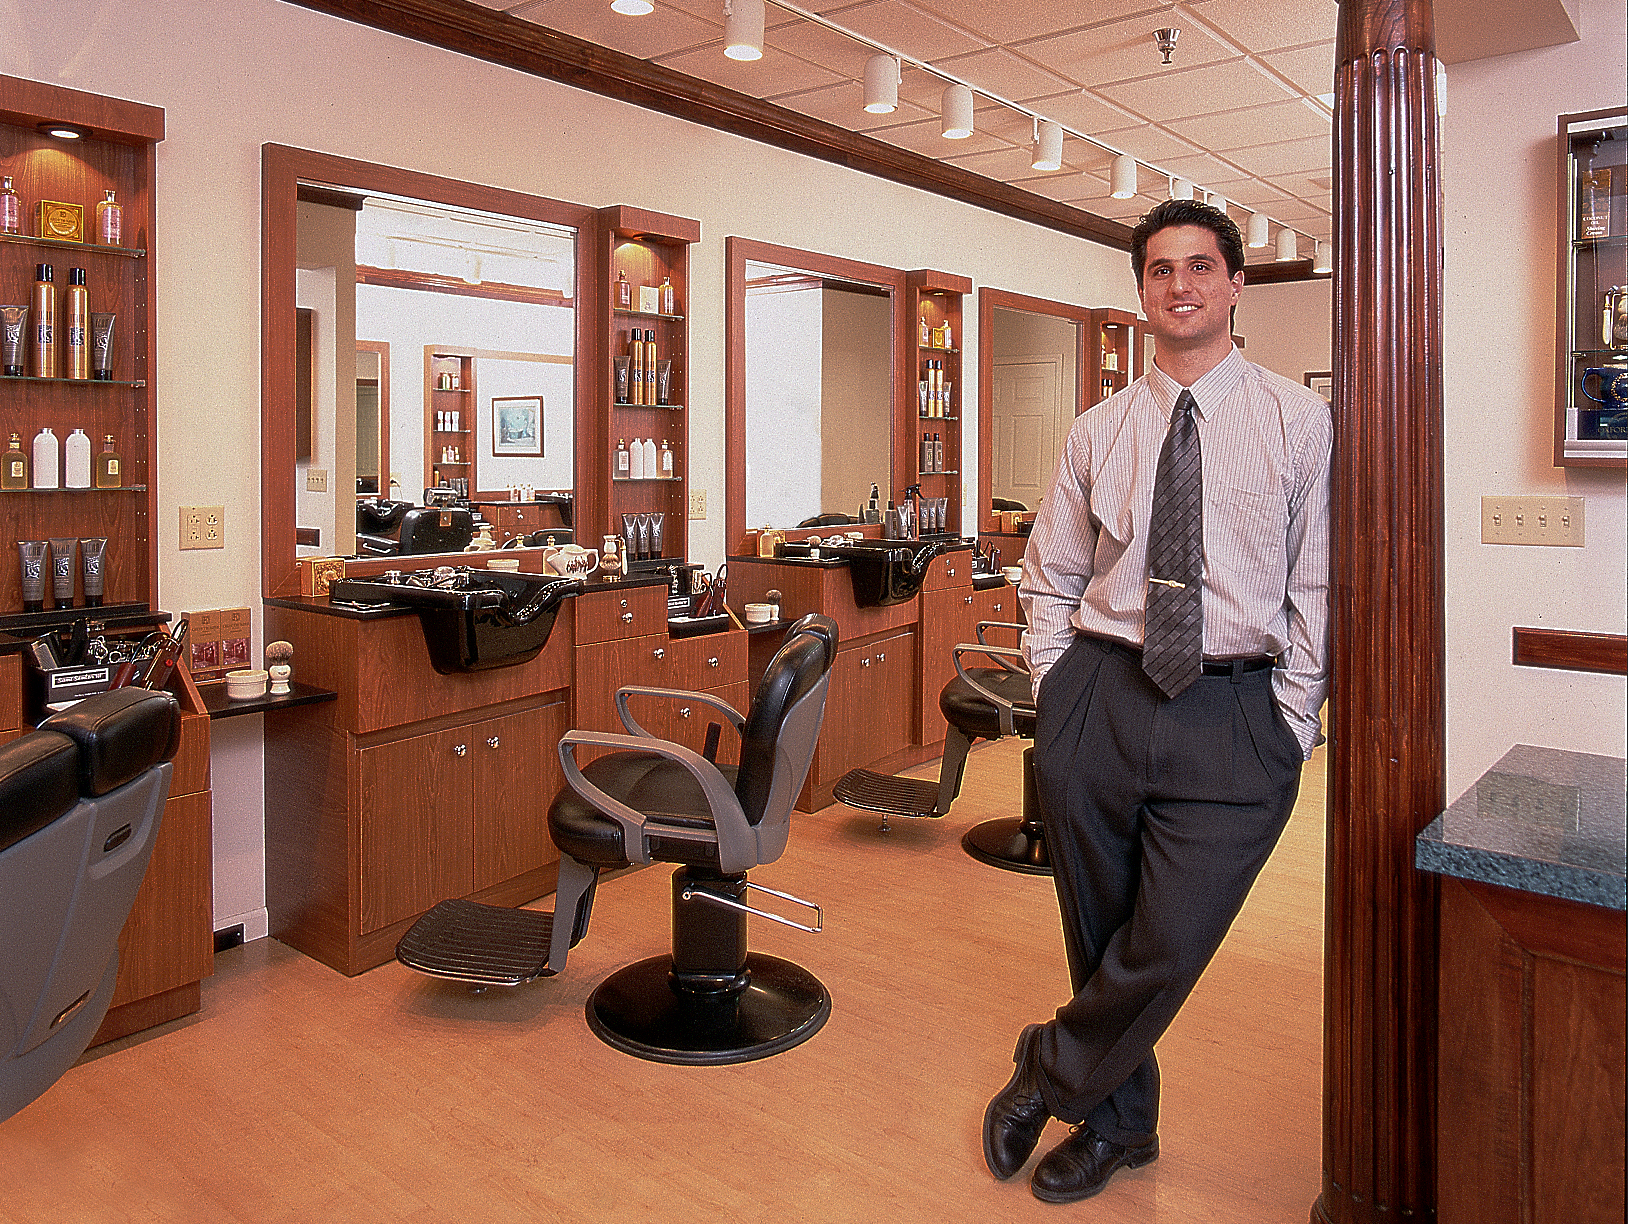 Barber Shop Albany Ny : ... Barber Gregory Zorian III From Gregorys Barbershop in Delmar, NY